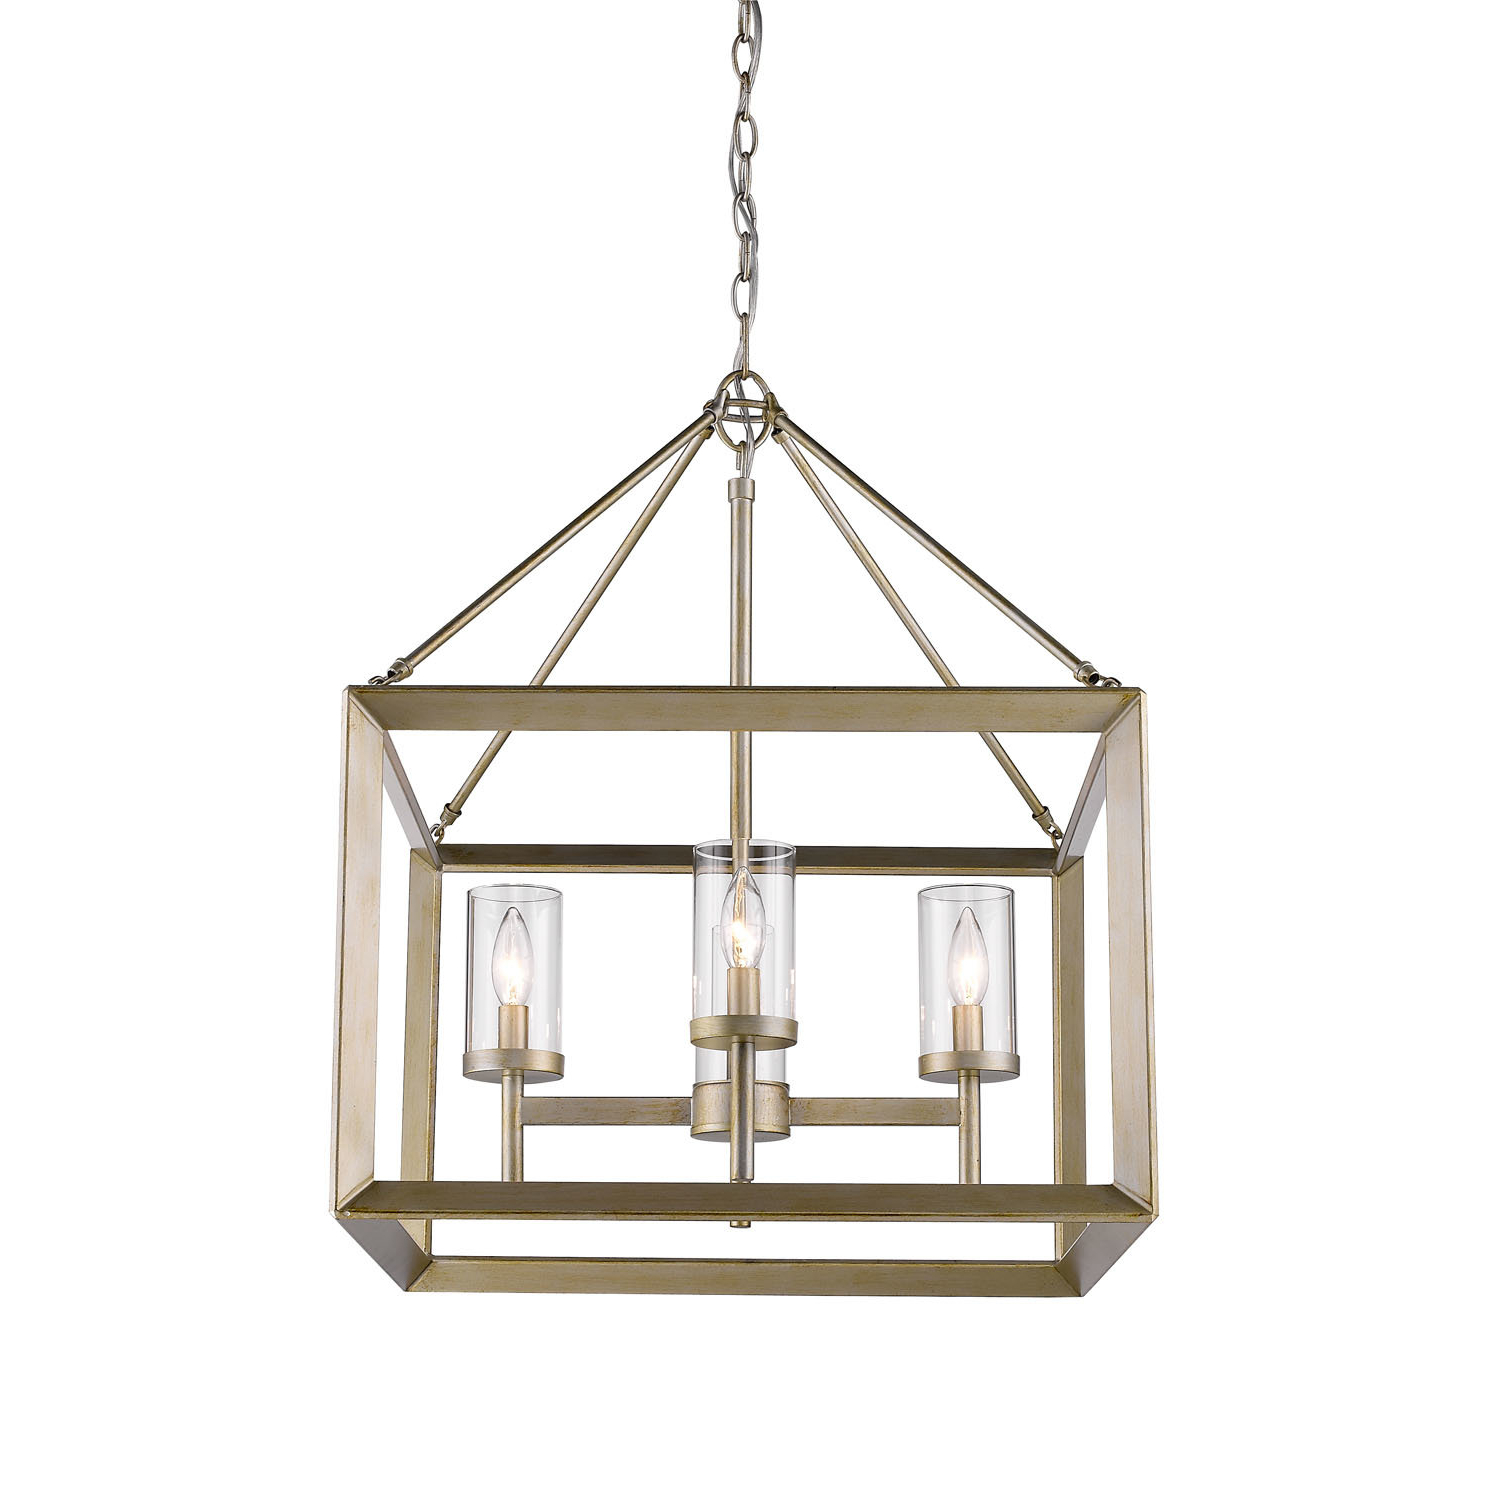 Birch Lane pertaining to Taya 4-Light Lantern Square Pendants